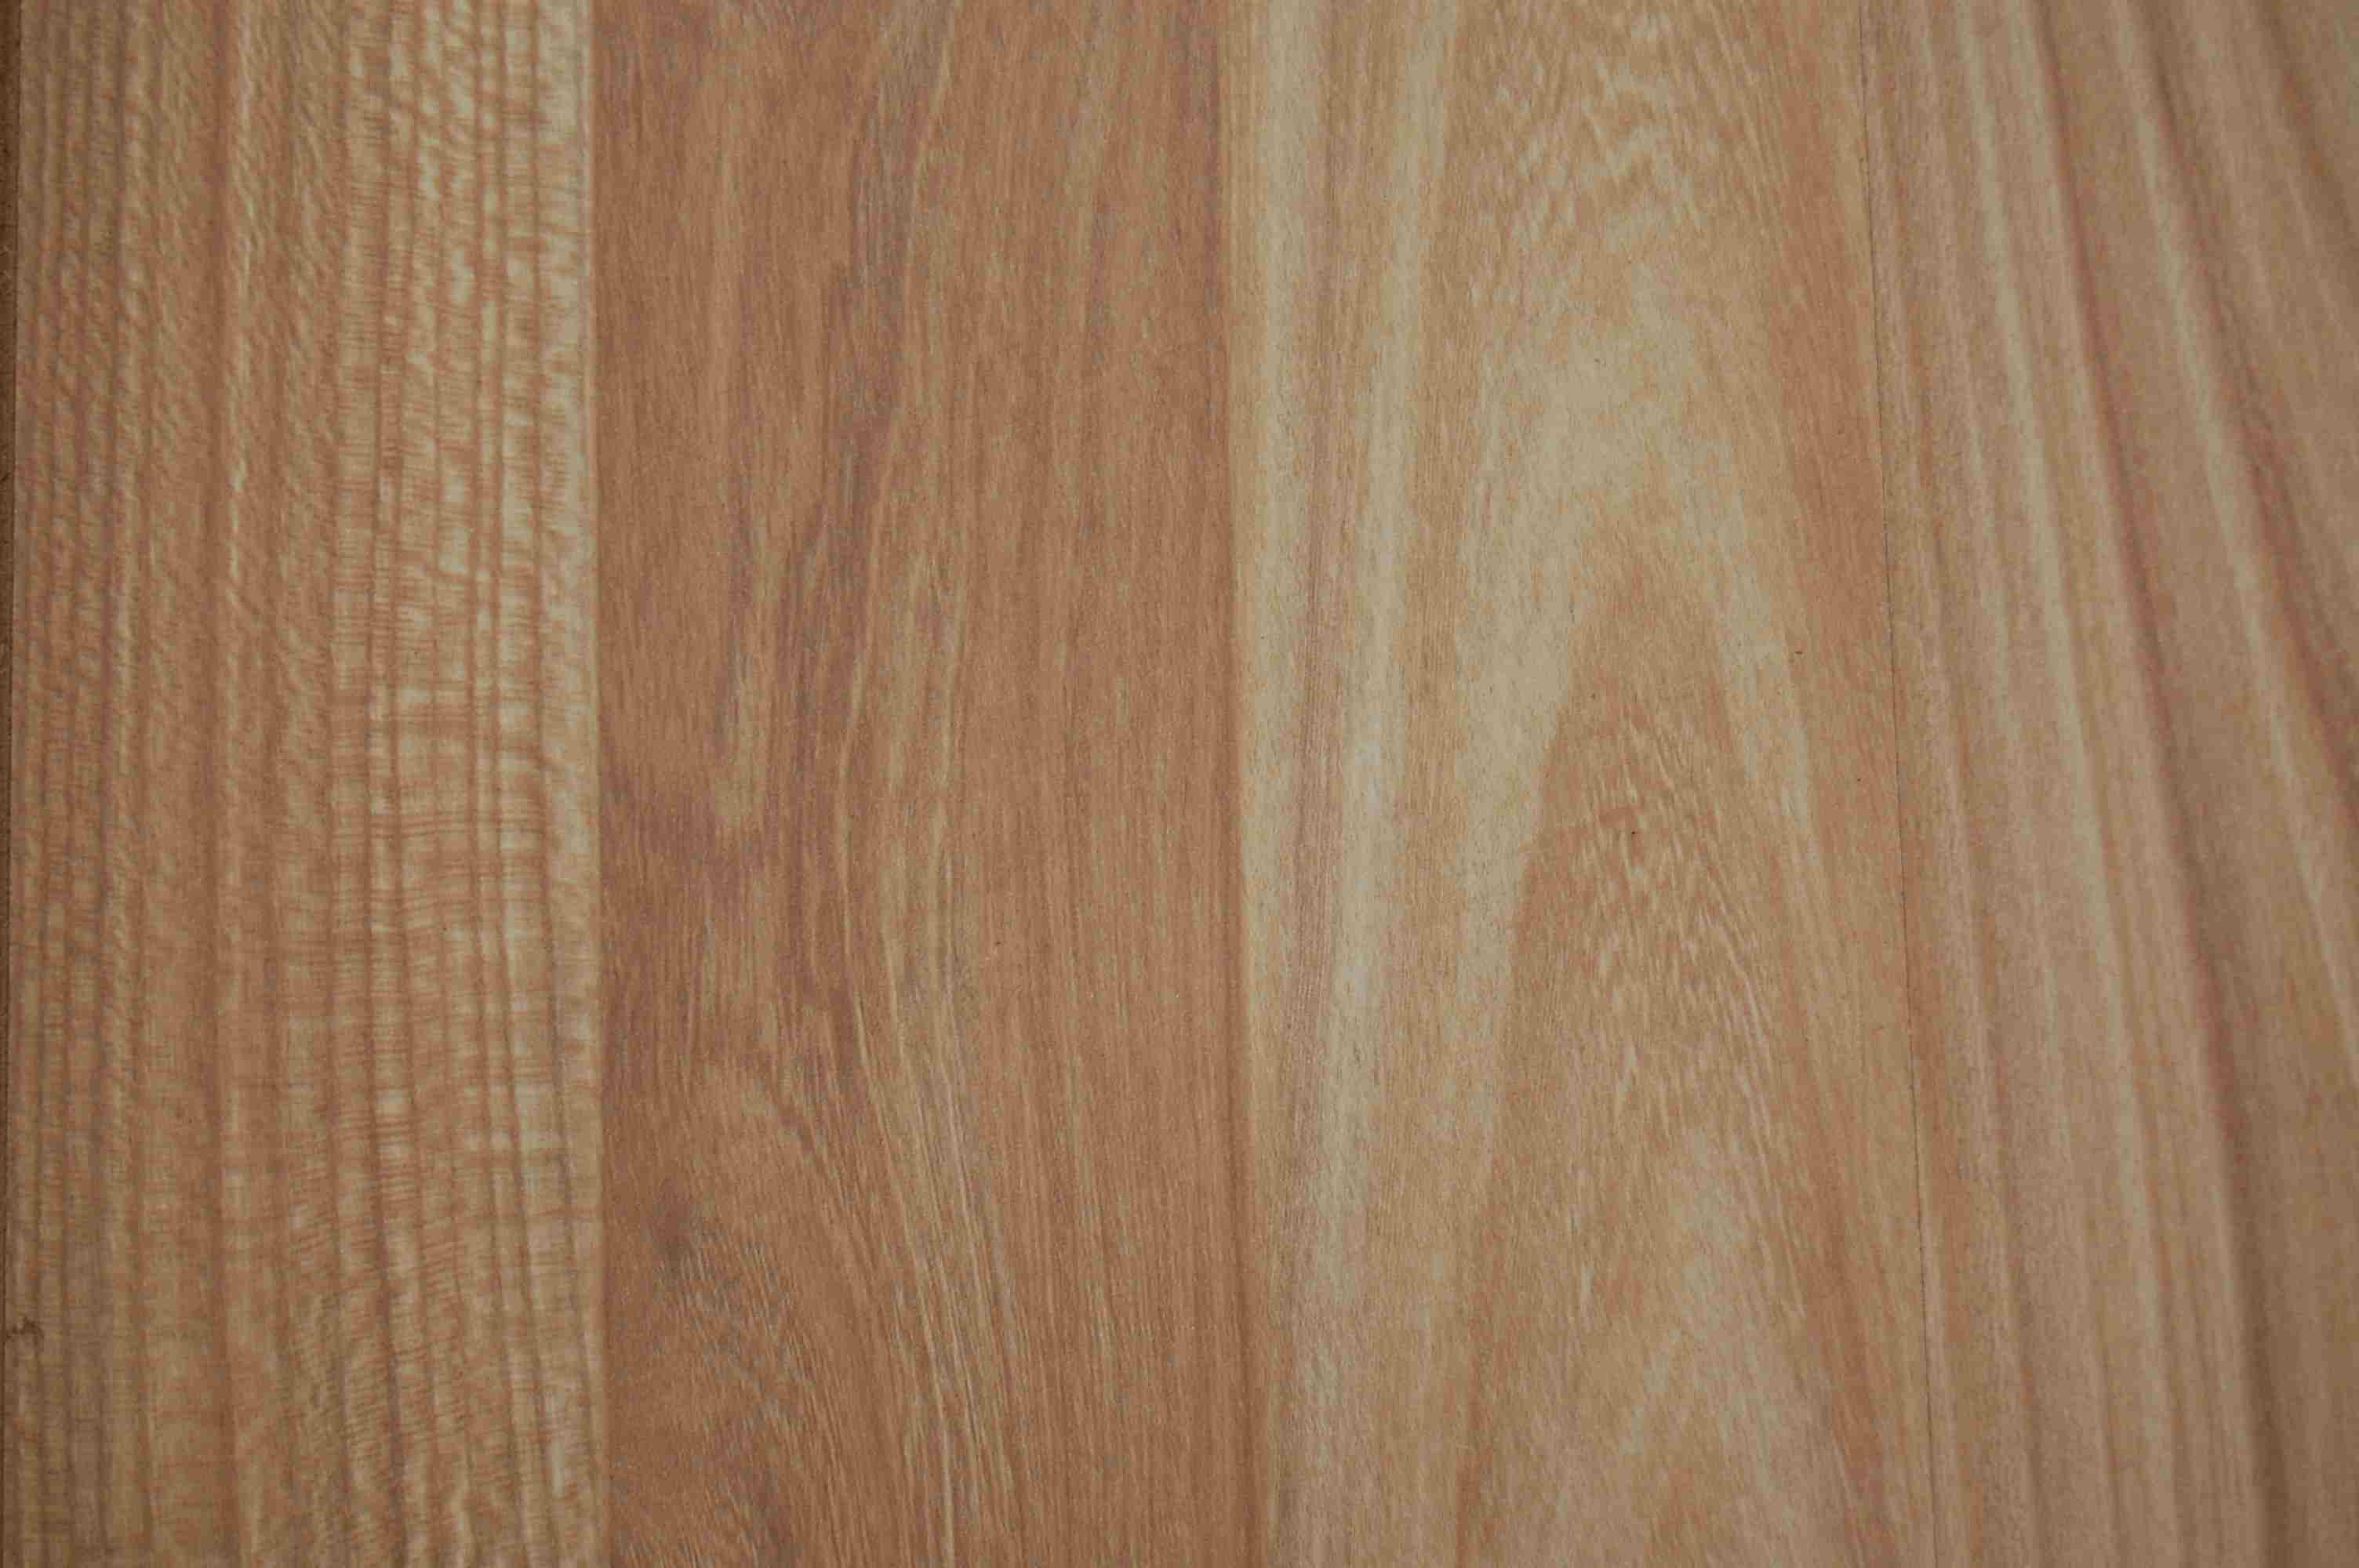 Laminate flooring wood flooring laminate flooring for Laminated wood